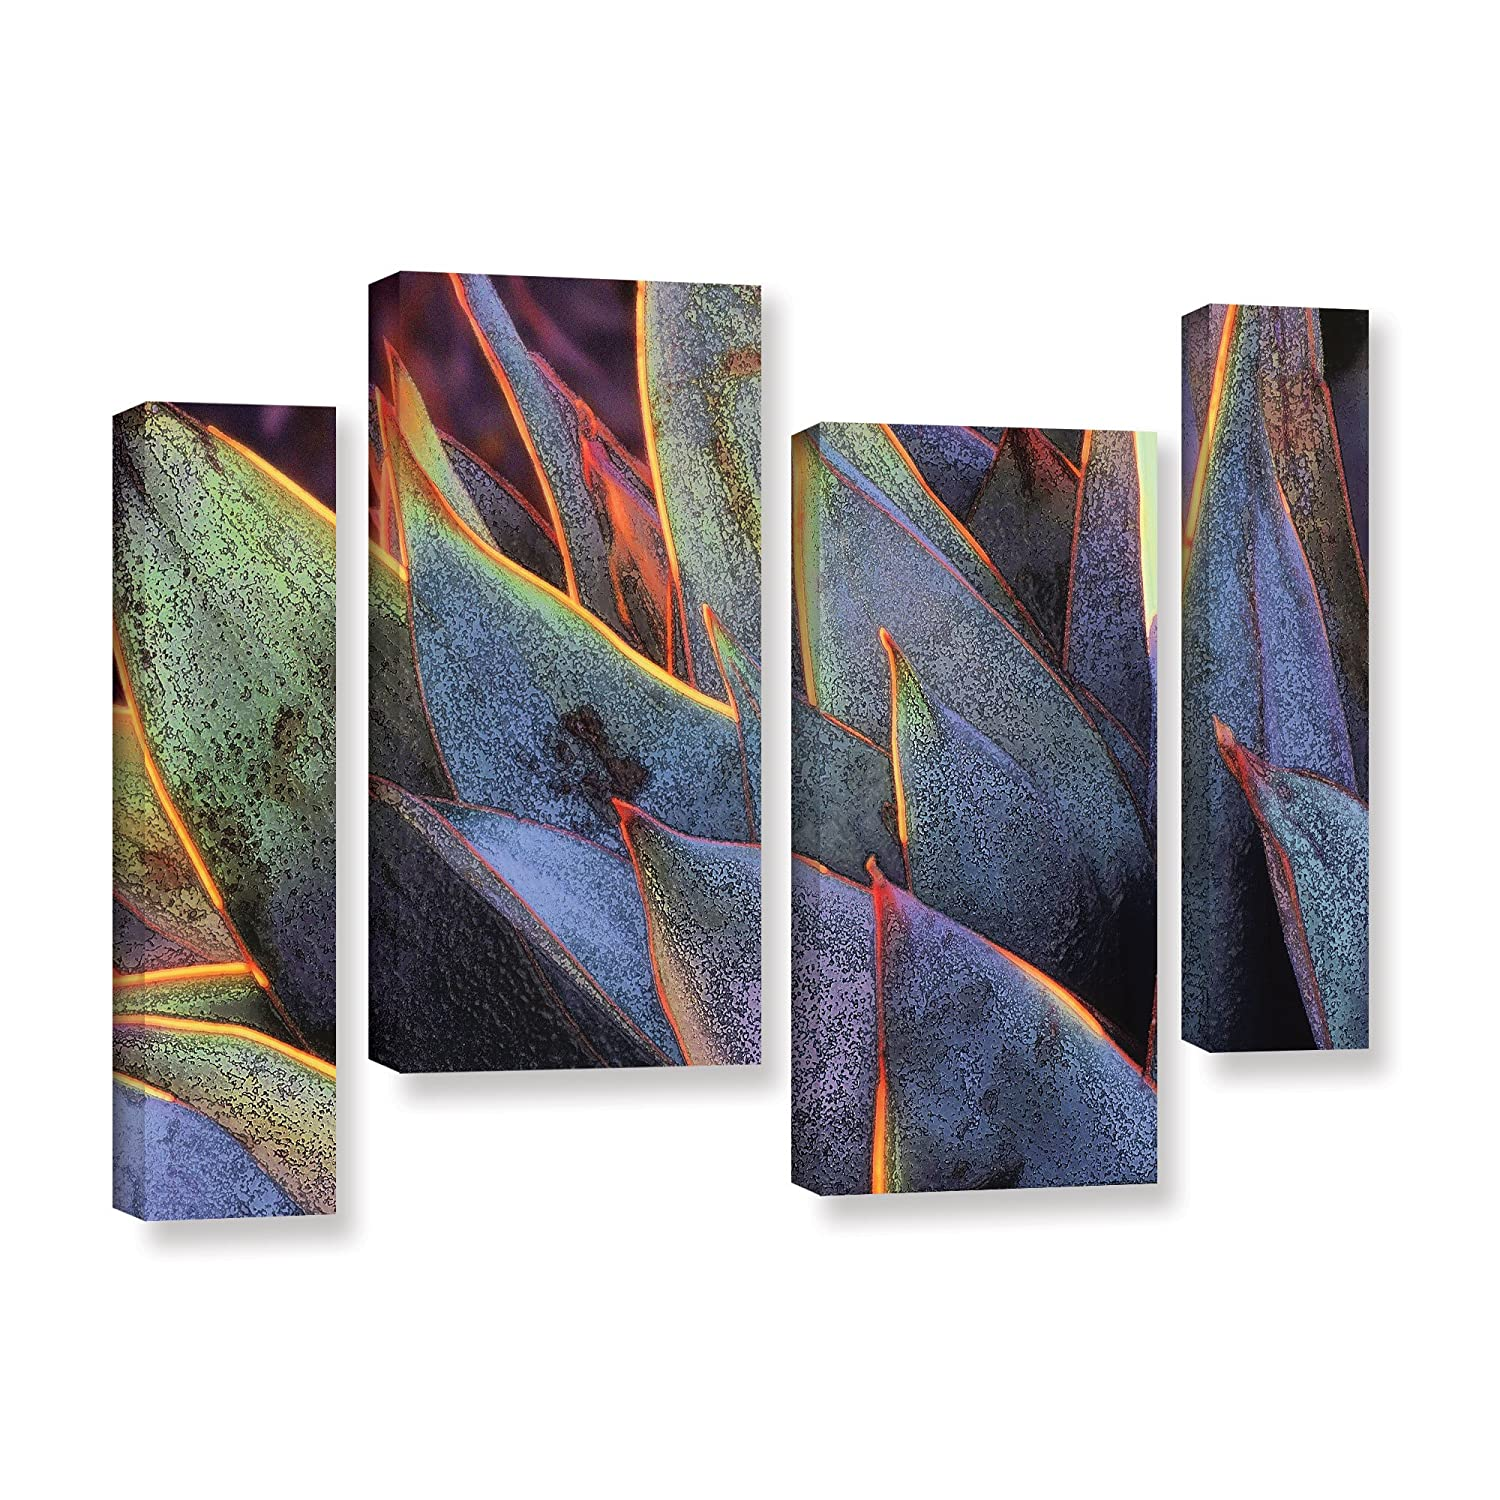 ArtWall Dean Uhlinger 4 Piece Sun Succulent Gallery-Wrapped Canvas Staggered Set 24 by 36